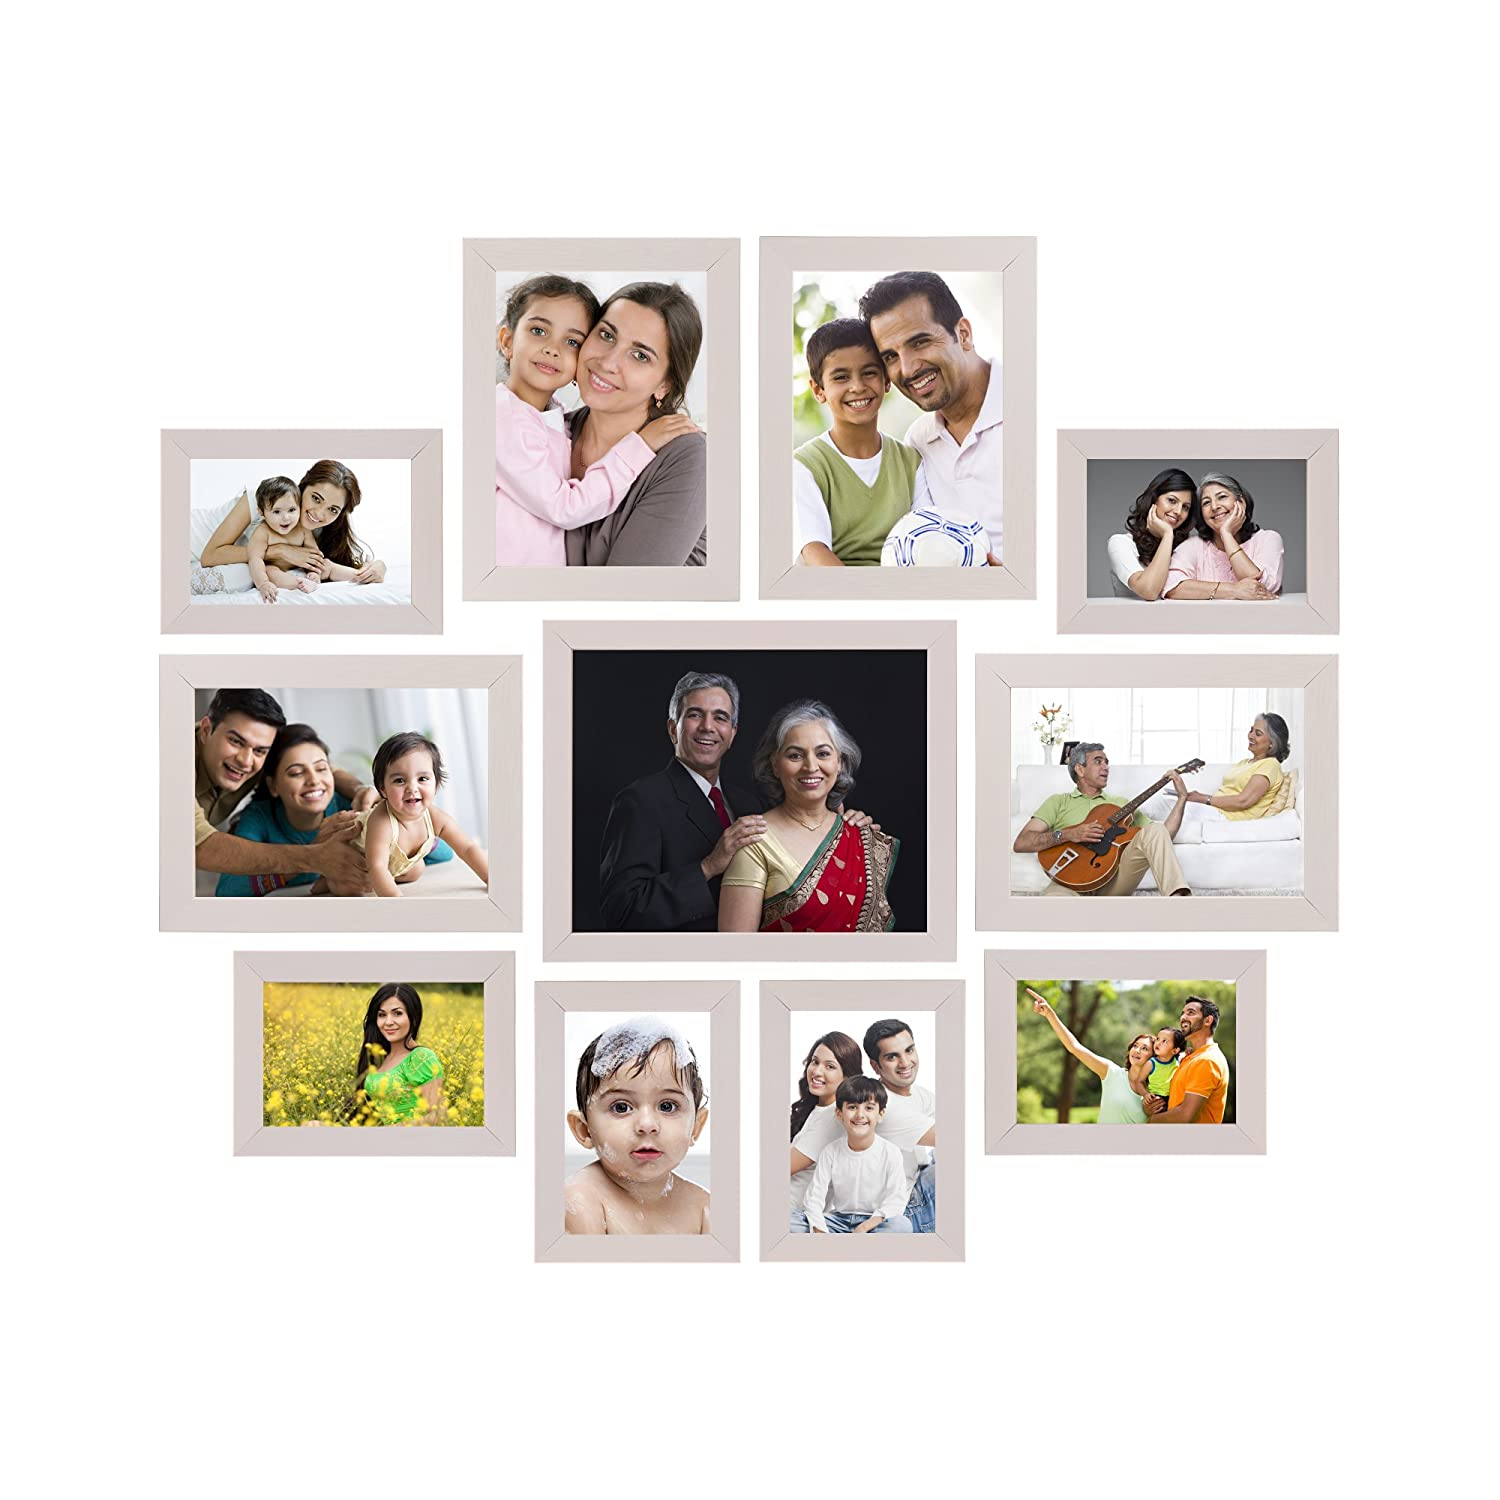 Solimo Collage Photo Frames, Set of 11,wall hanging (6 pcs -